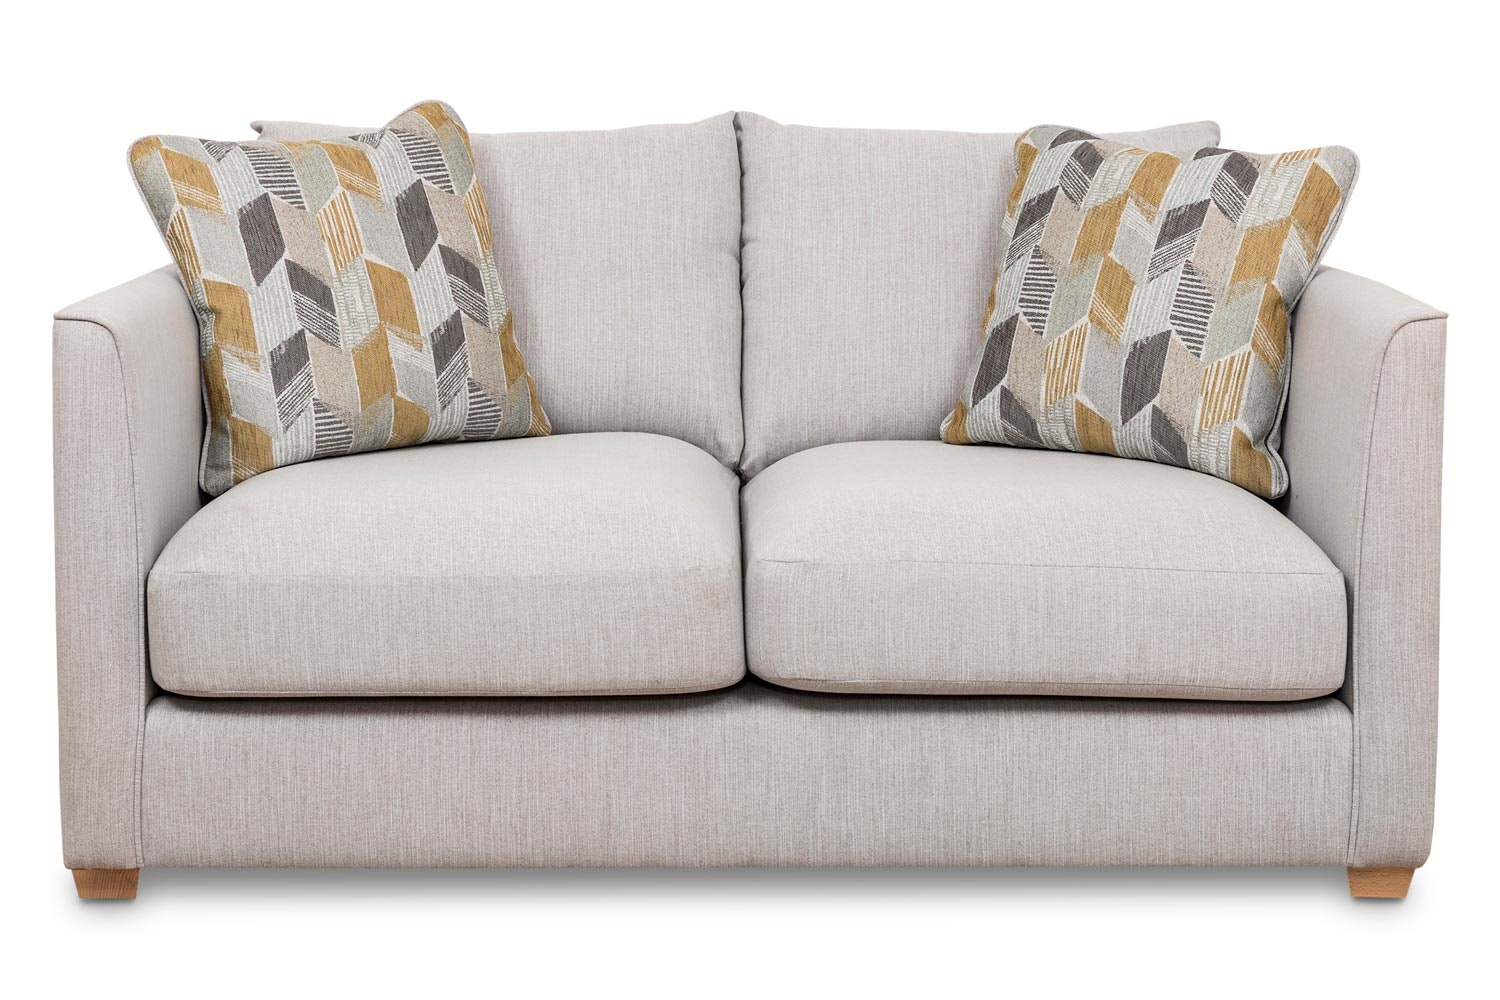 Faye 2 Seater Sofa | Category A